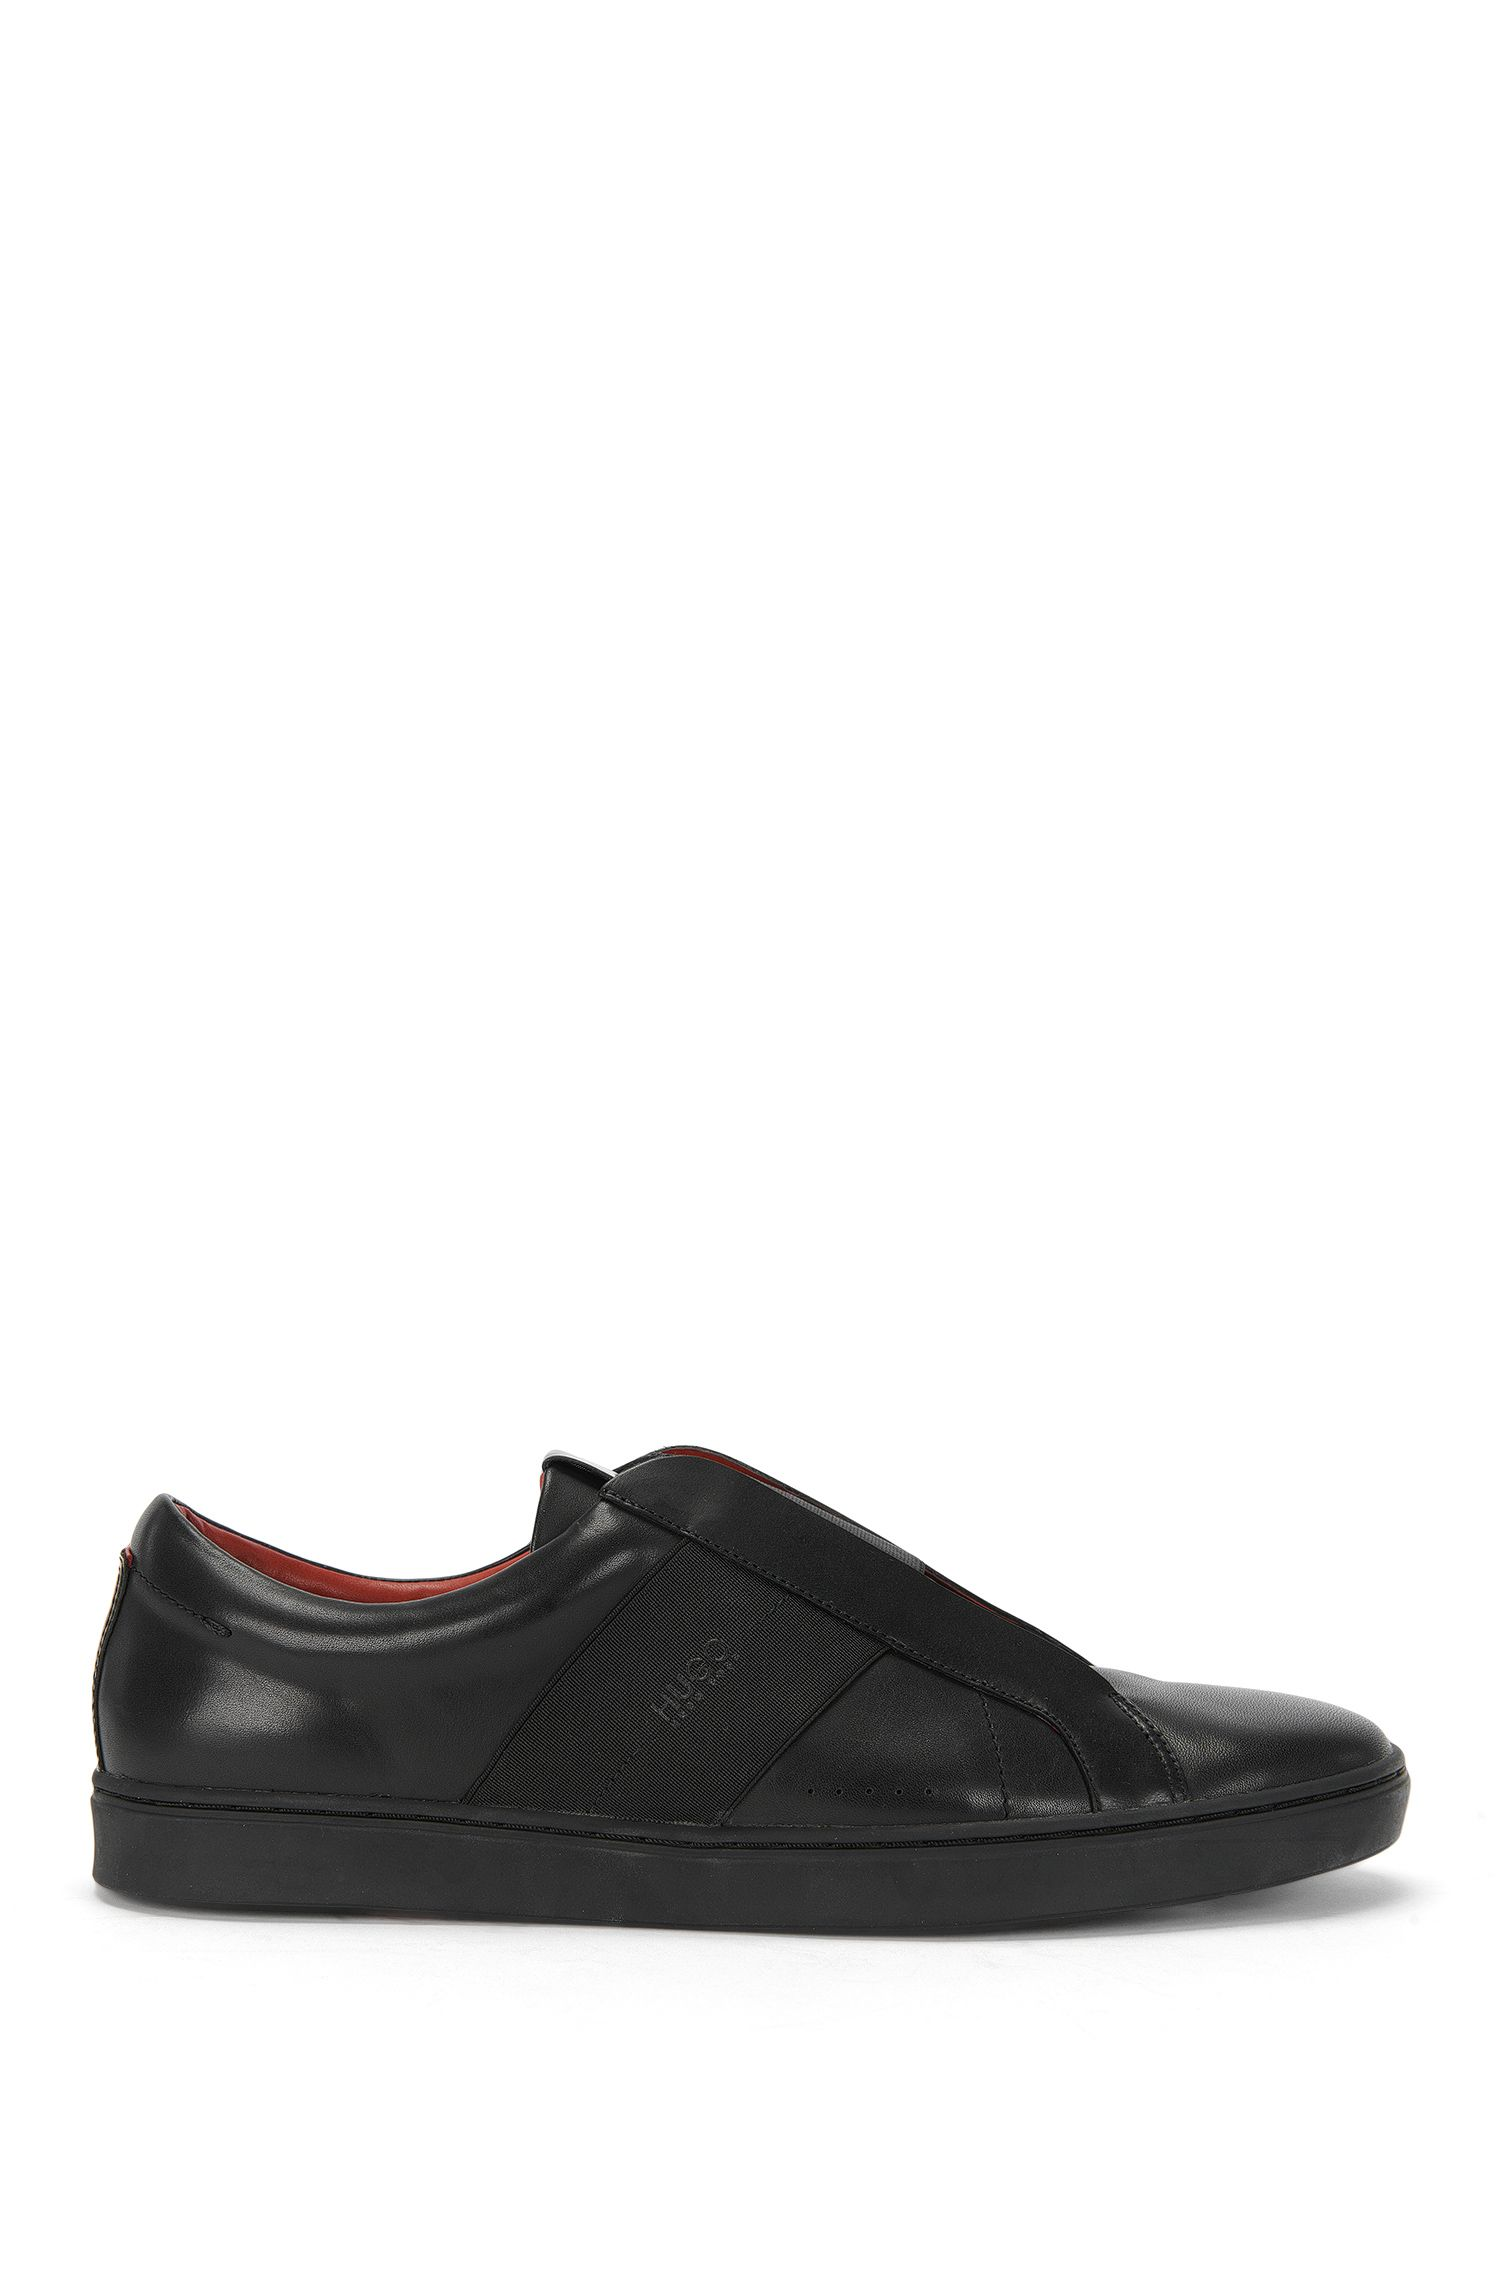 Sneakers slip-on in pelle nappa